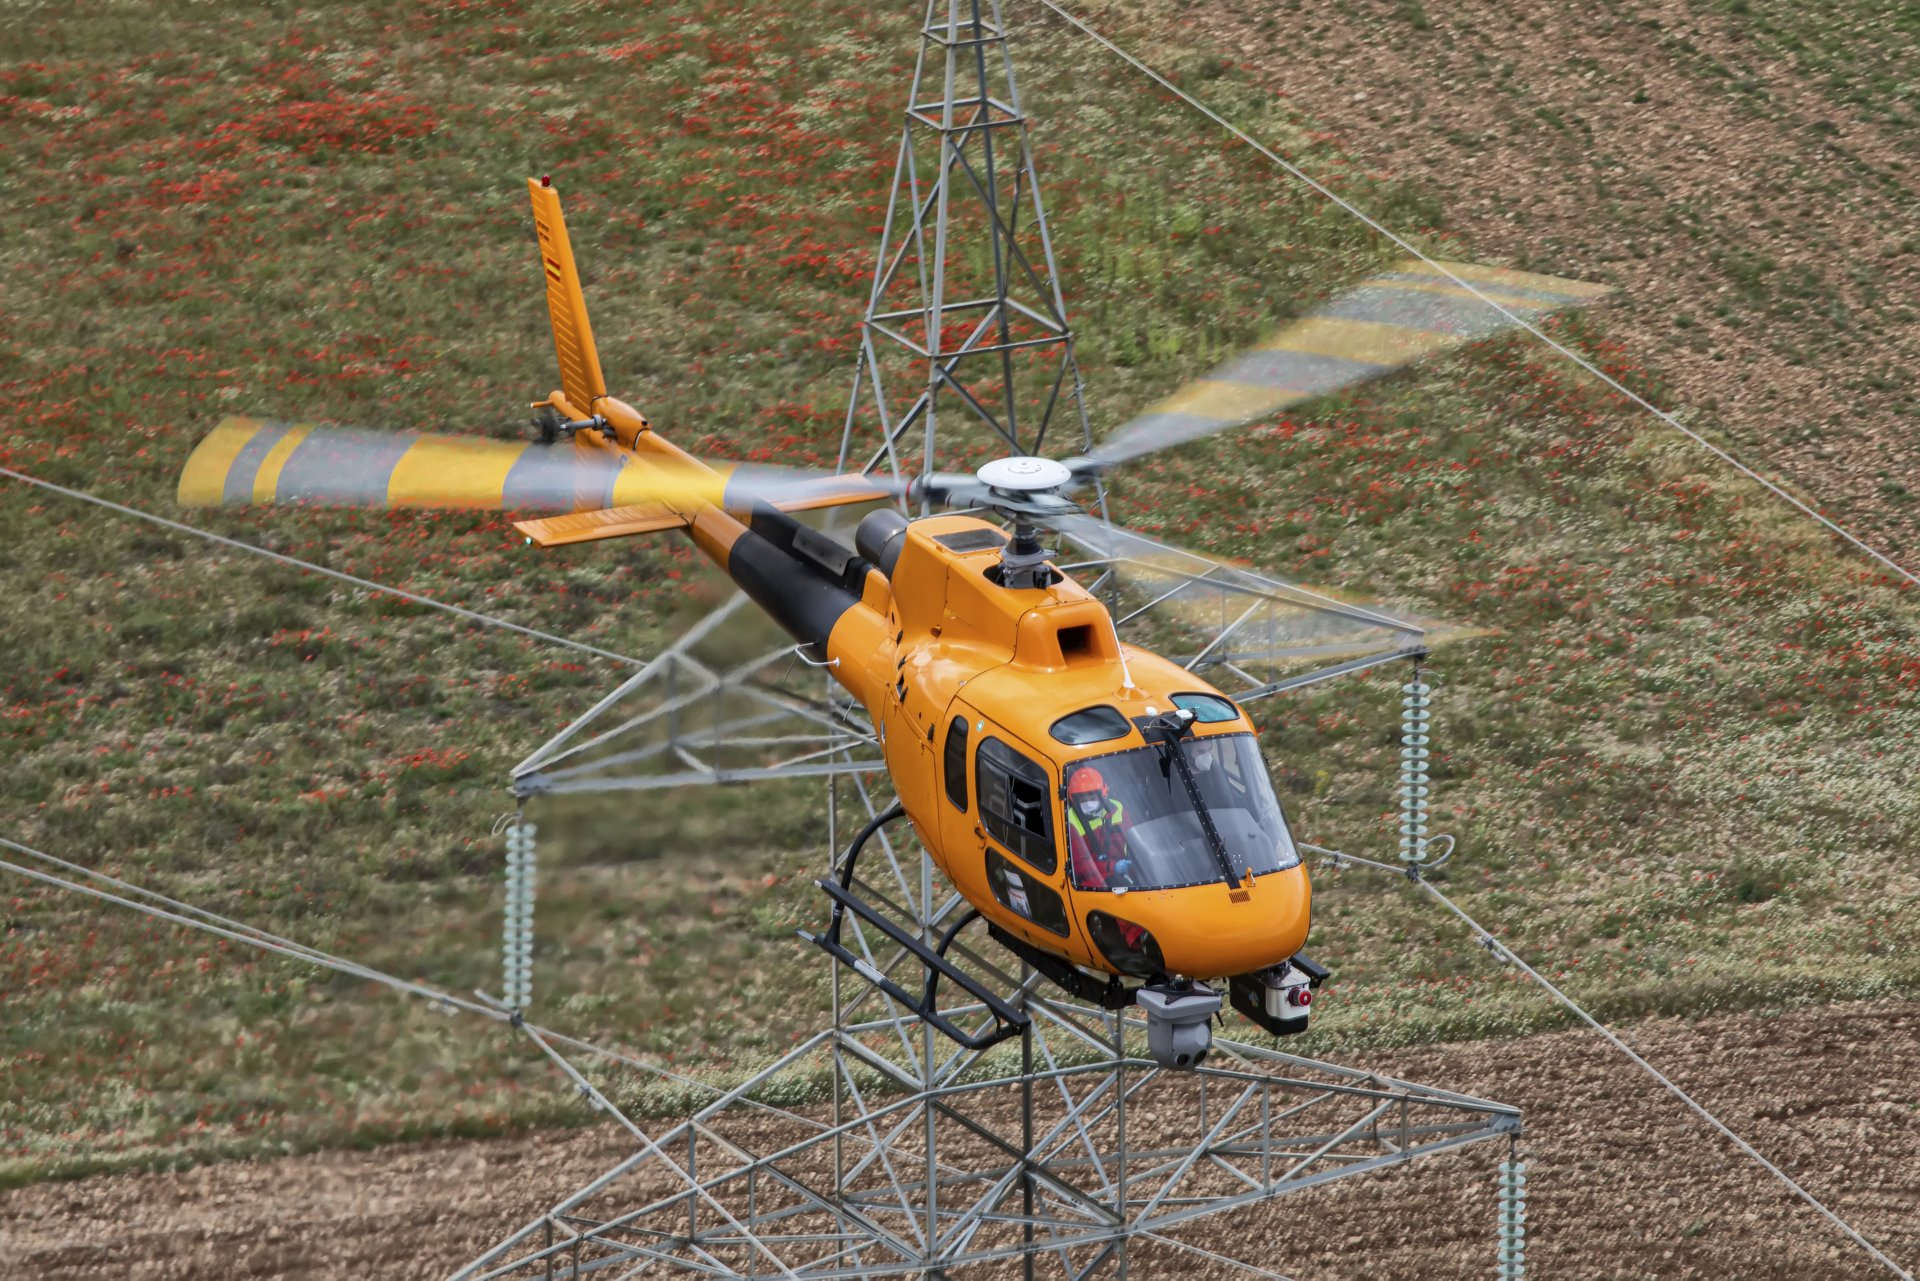 Airbus Helicopters has received EASA certification for the power upgrade of its single-engine H125 helicopter. Announced at Heli-Expo last year, this major evolution increases the aircraft's power by up to 10% by making full use of the available power of Safran Helicopter Engines' Arriel 2D.